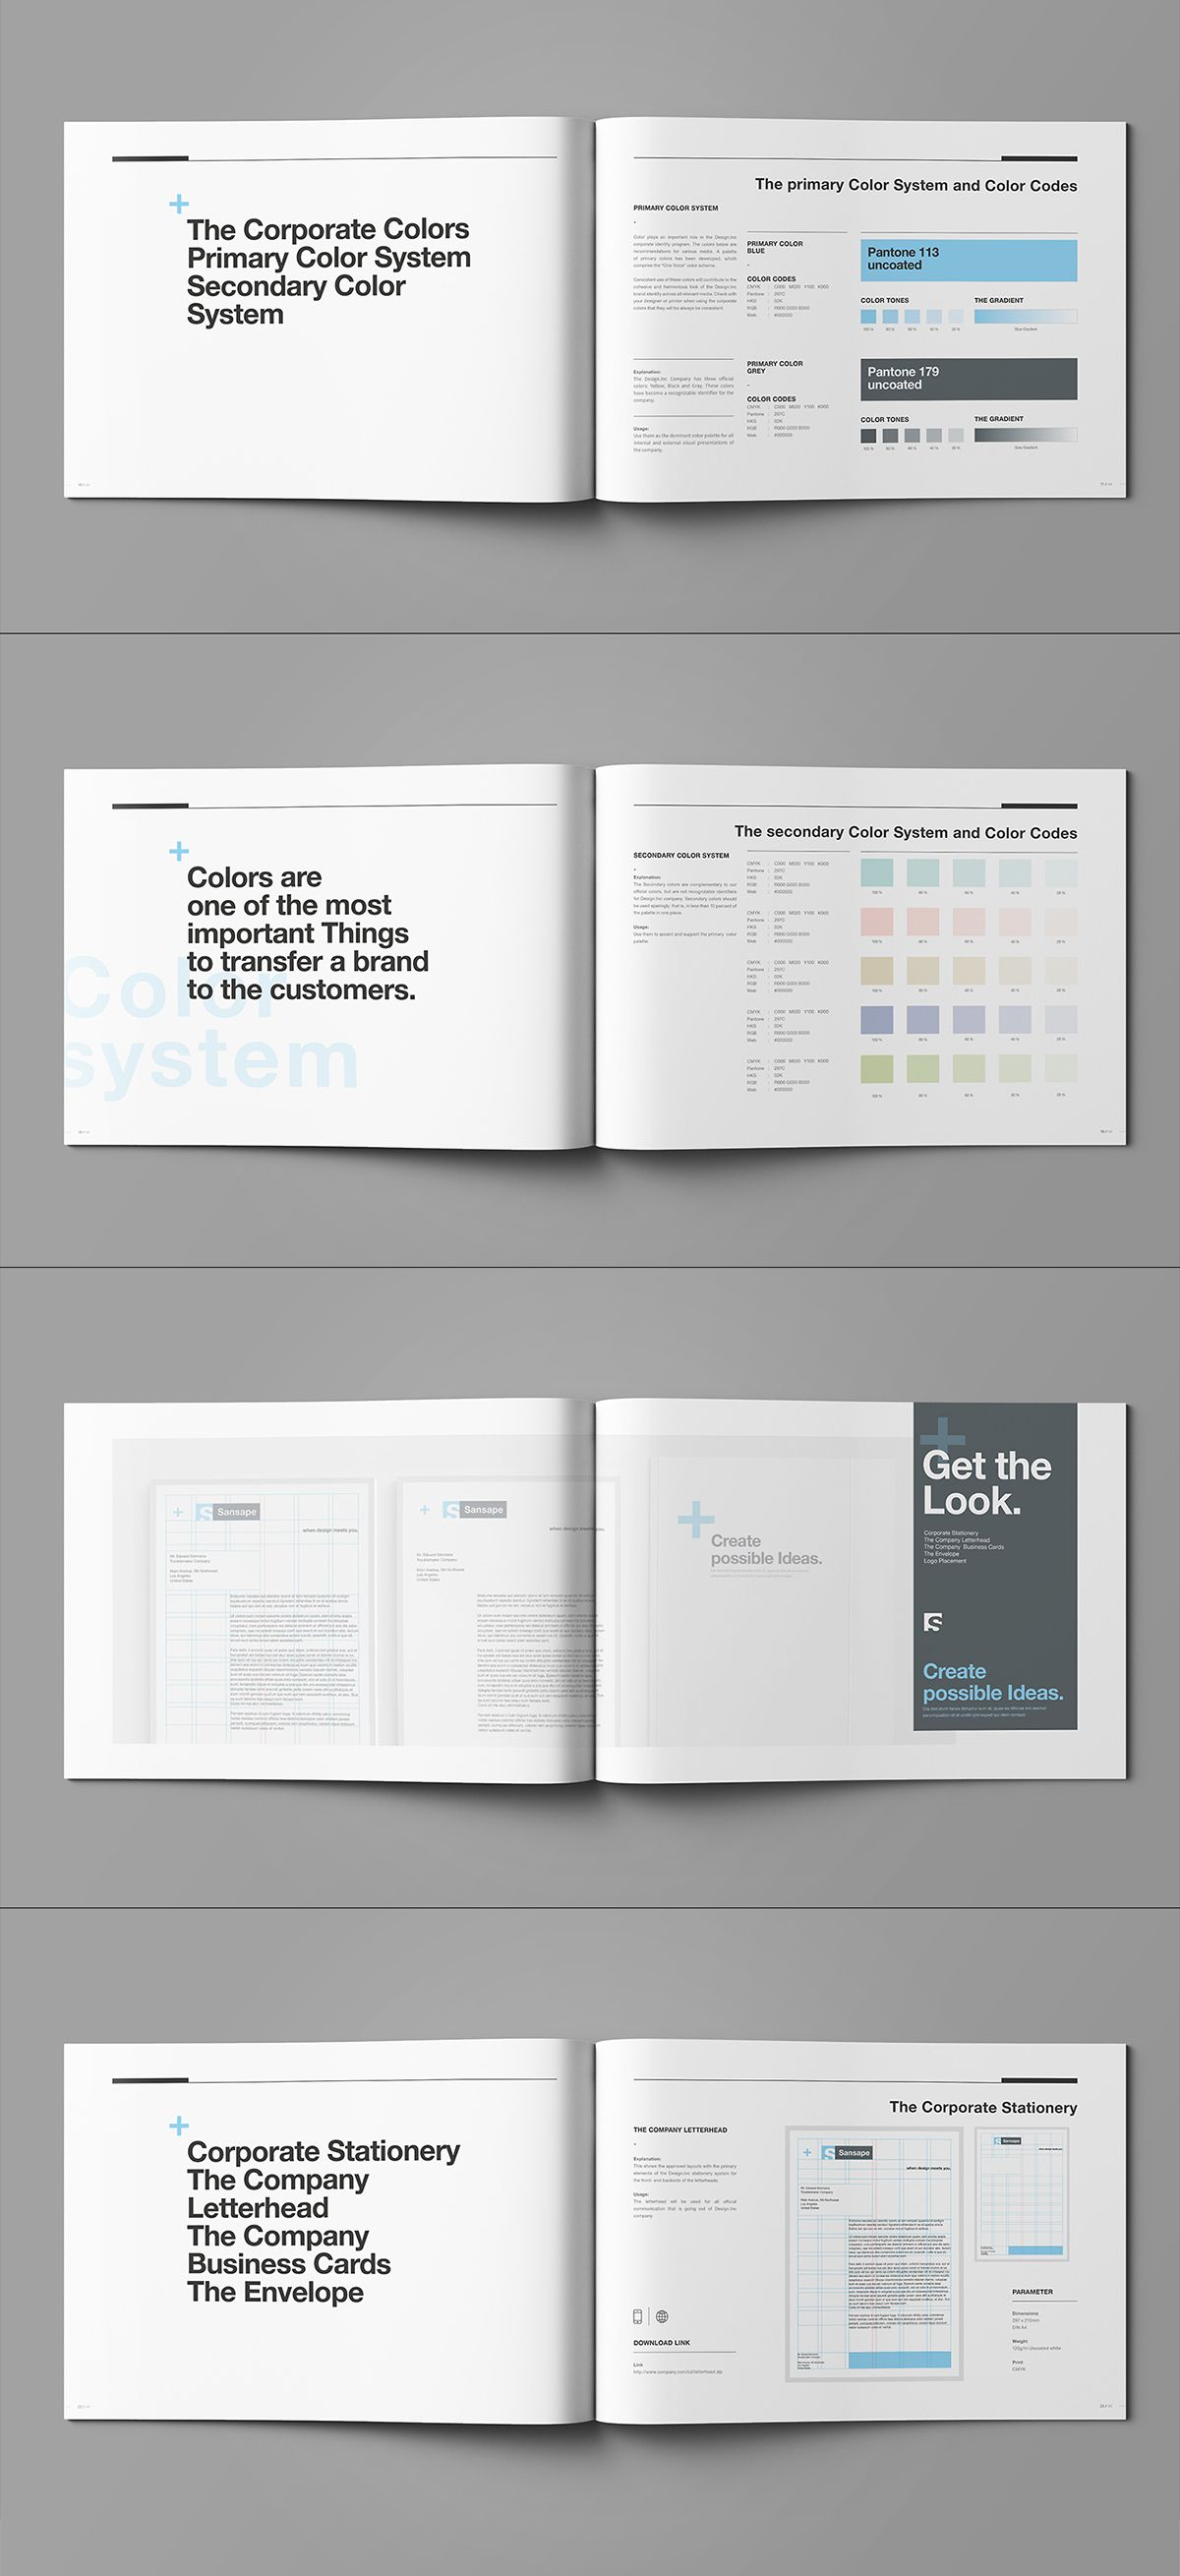 Inspiratie huisstijlboek corporate branding pinterest brand brand manual and identity template corporate design brochure with 44 pages and real textminimal and professional brand manual and identity brochure spiritdancerdesigns Image collections